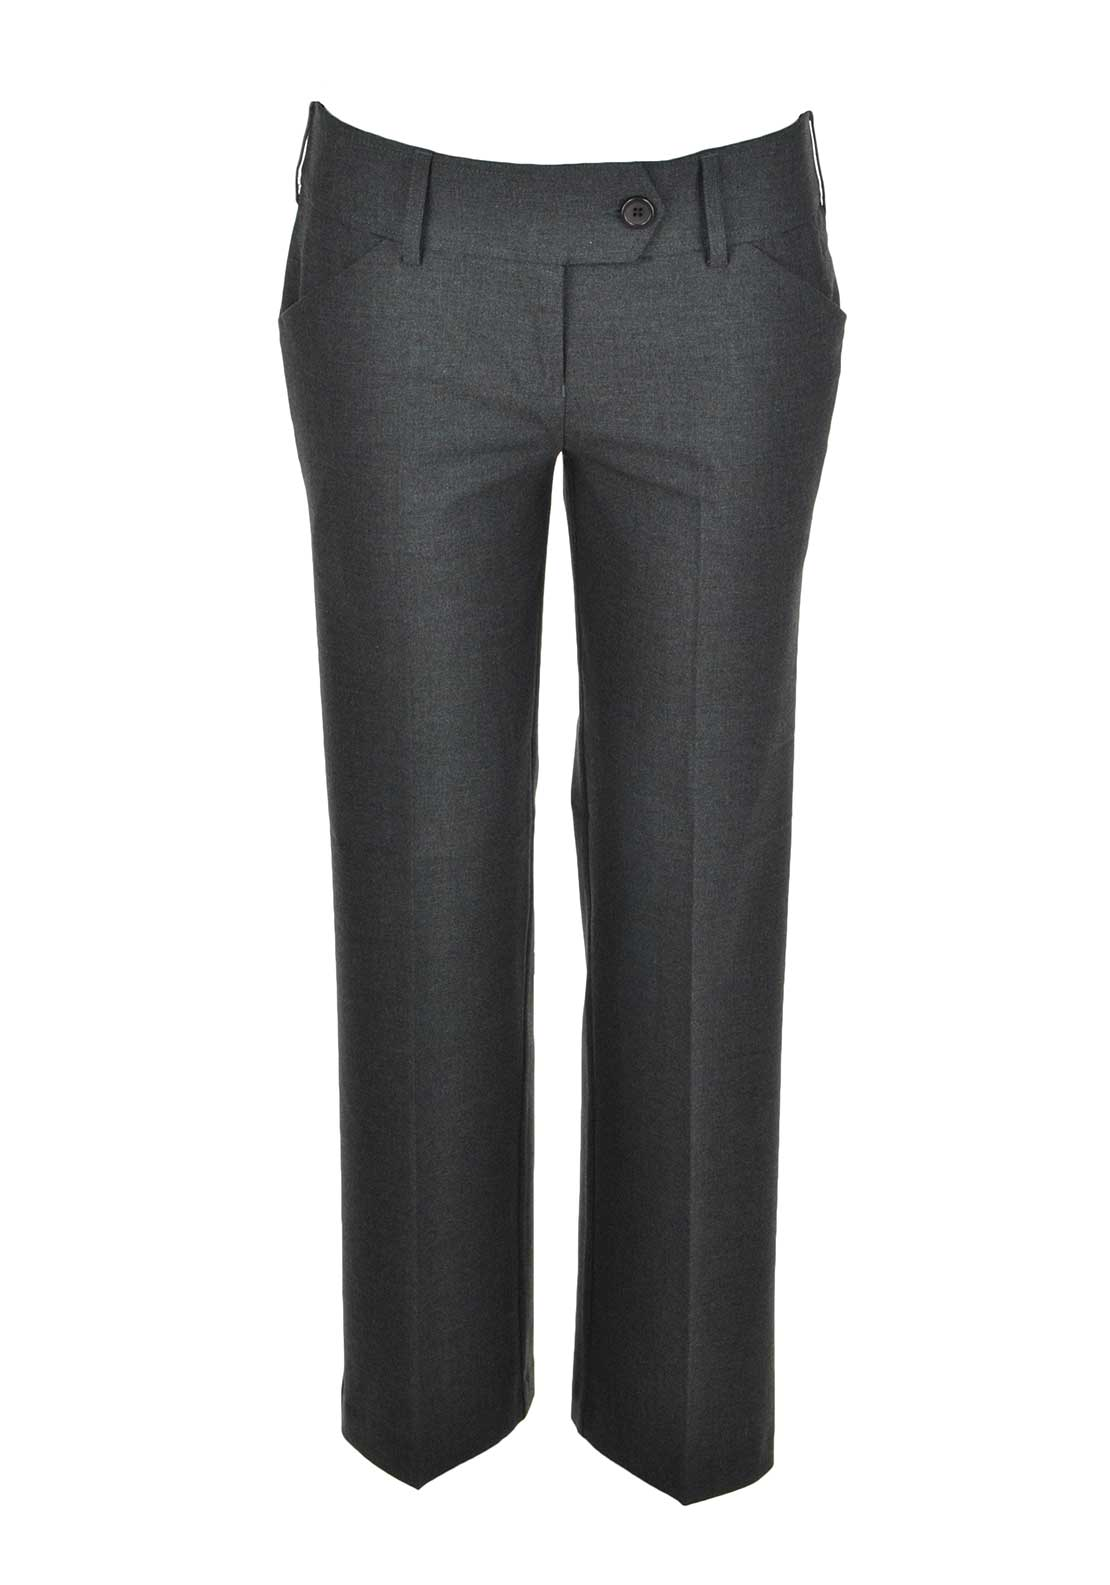 Girls School Uniform Trousers, Grey